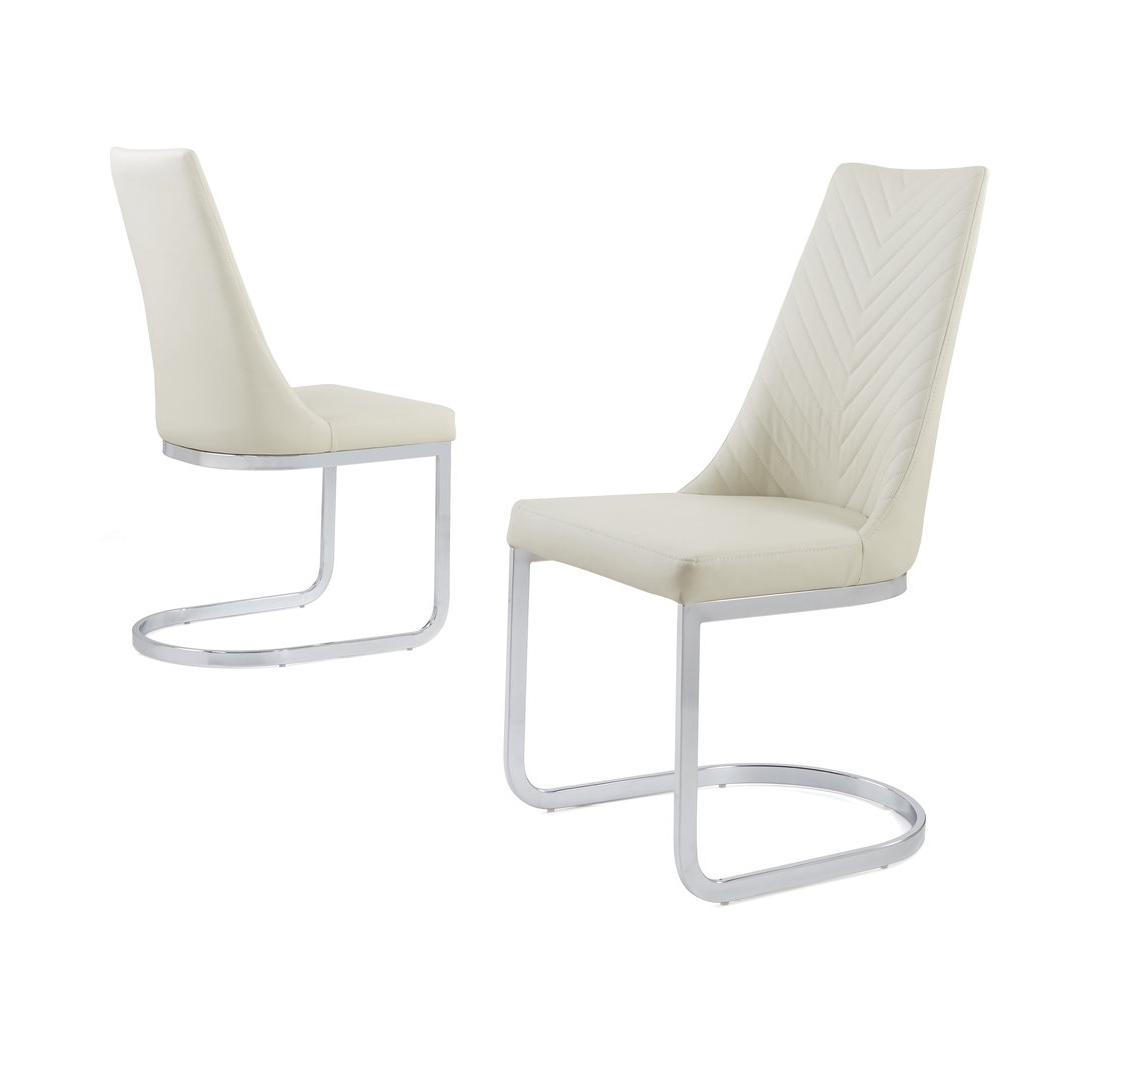 Cream Faux Leather Dining Chair With Curved Leg – Homegenies For Most Up To Date Chrome Leather Dining Chairs (View 14 of 25)